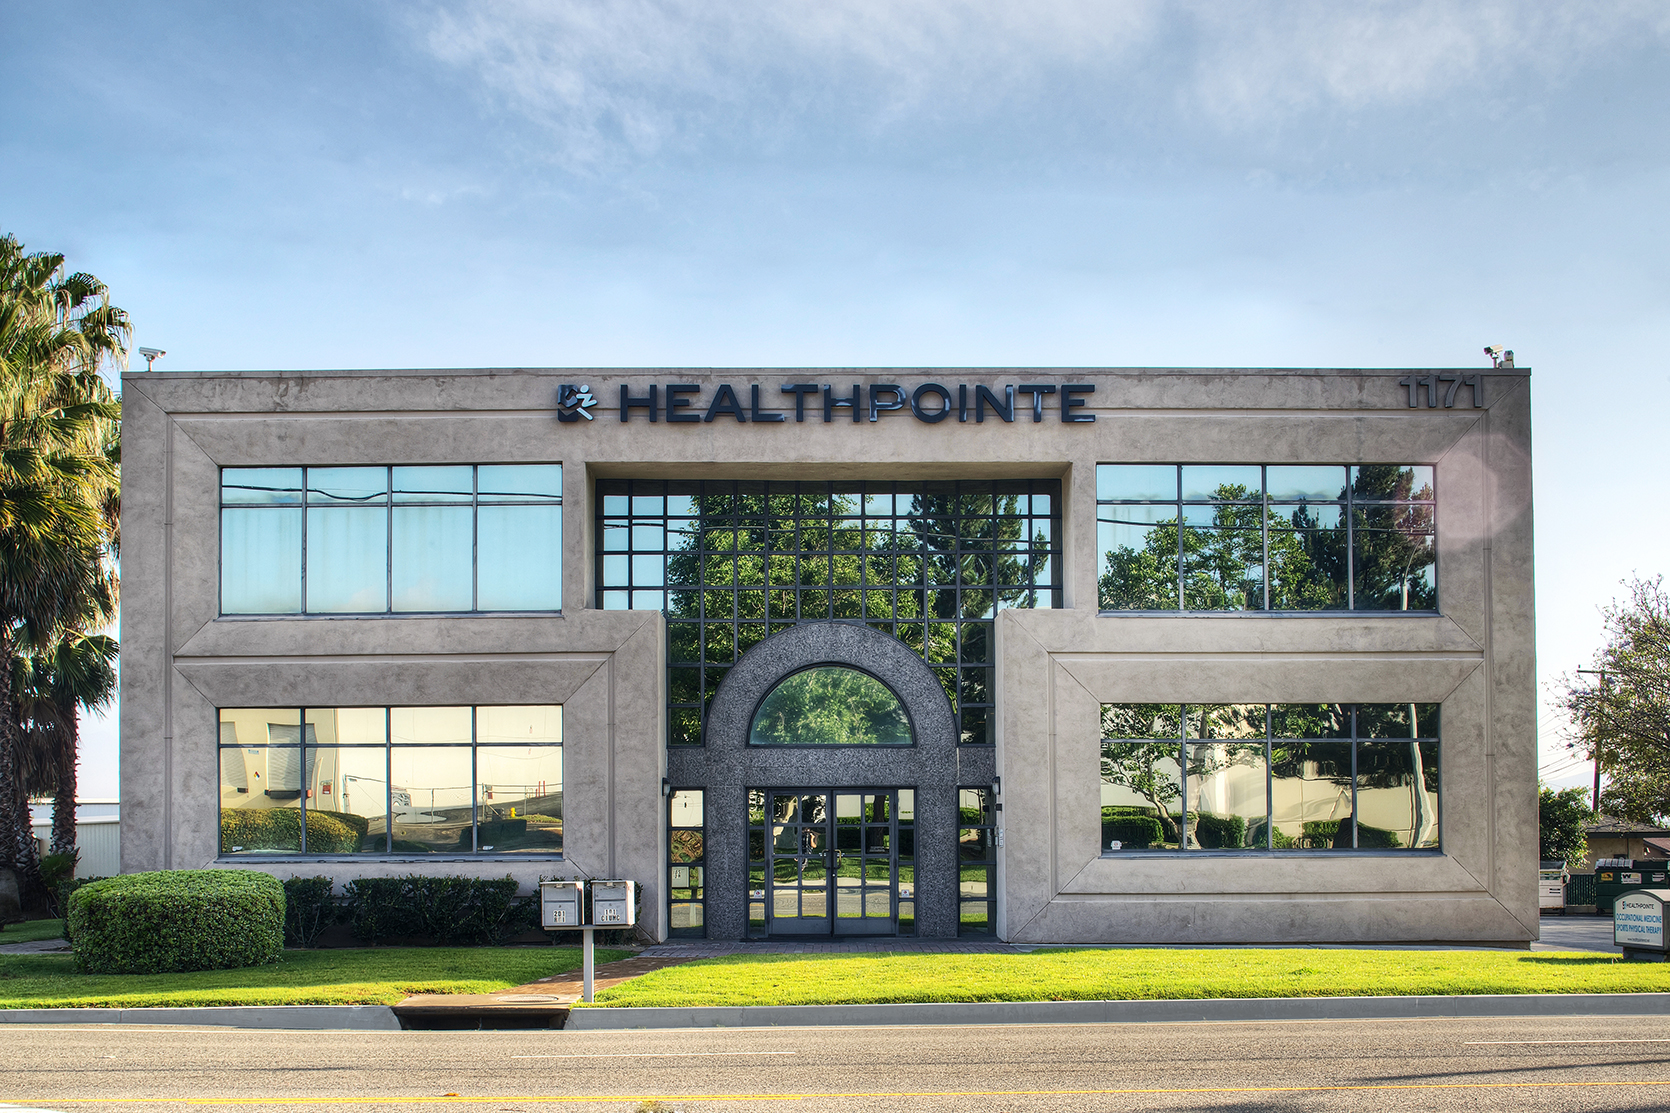 Healthpointe reviews | Orthopedists at 1171 Railroad St - Corona CA